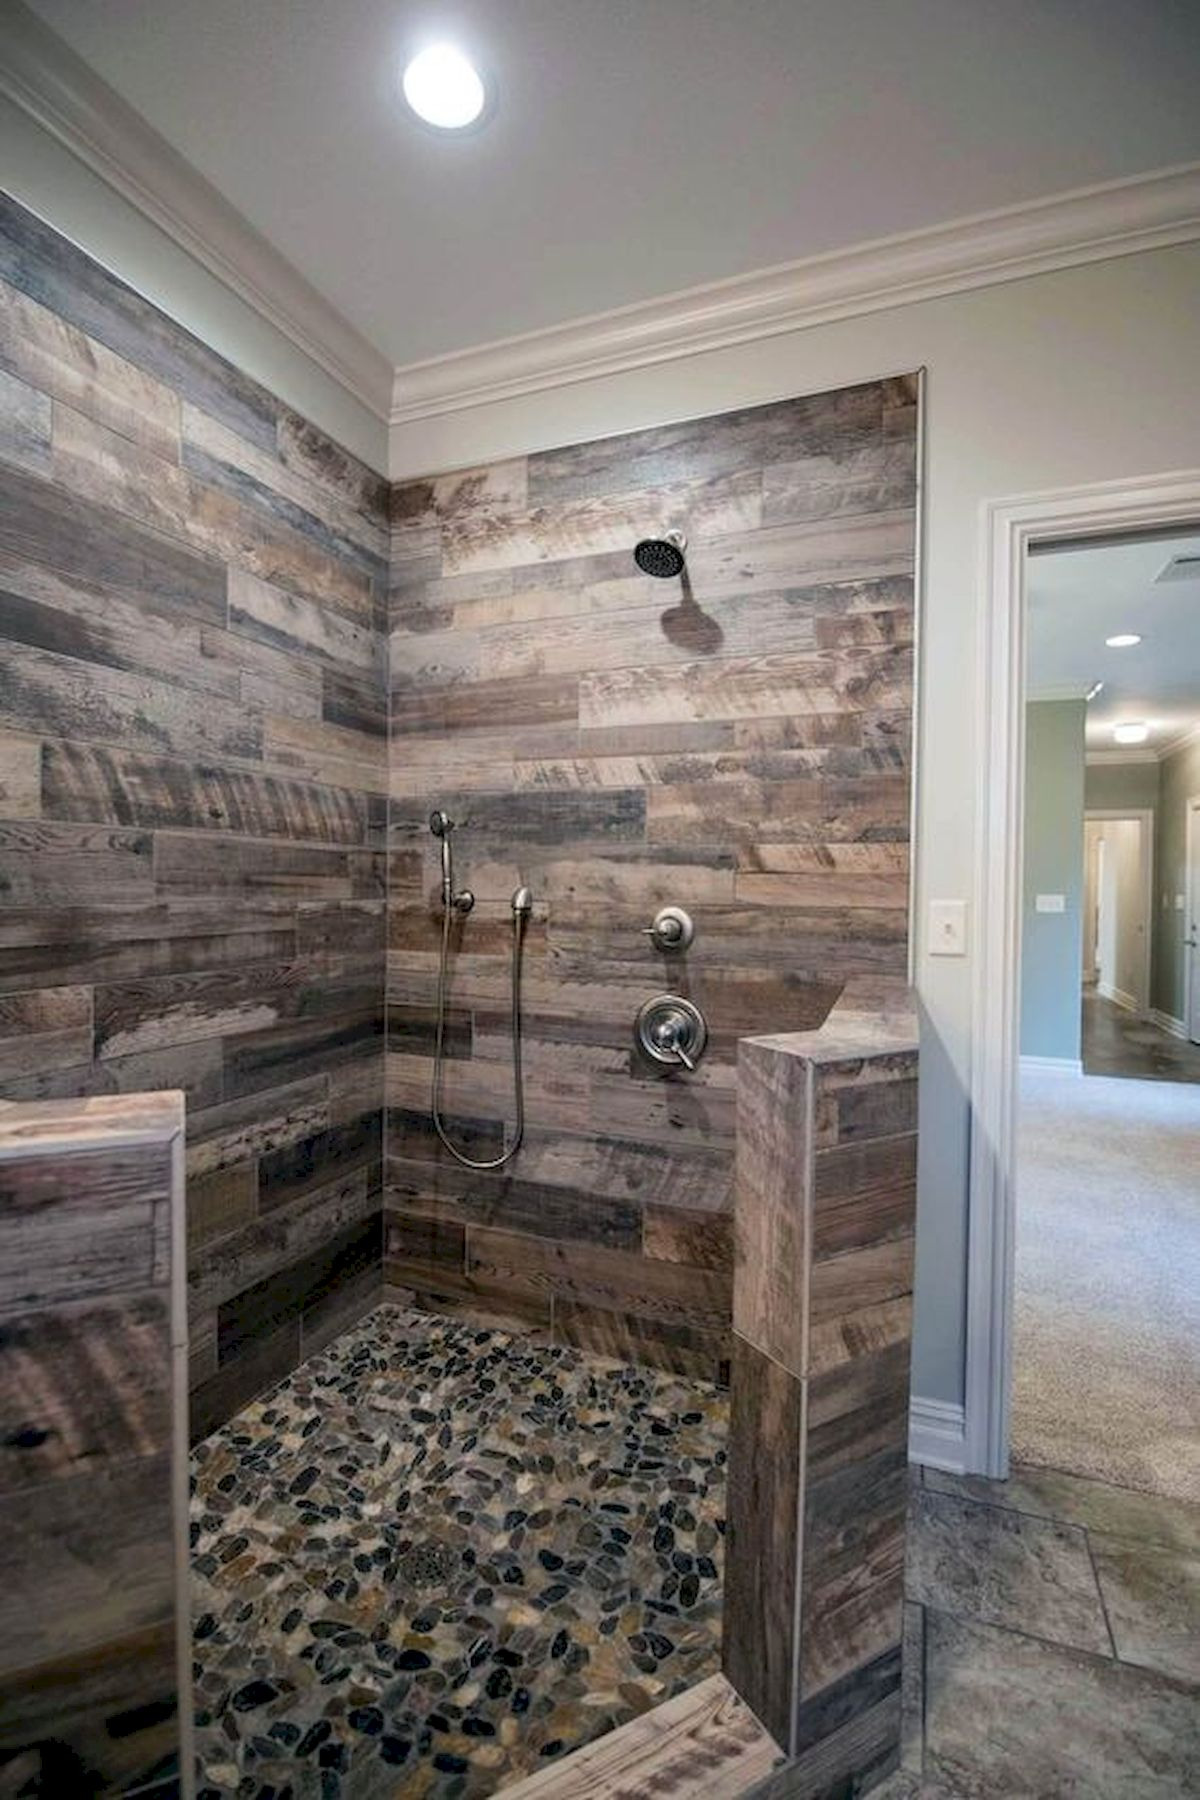 46 Fantastic Walk In Shower No Door for Bathroom Ideas 37